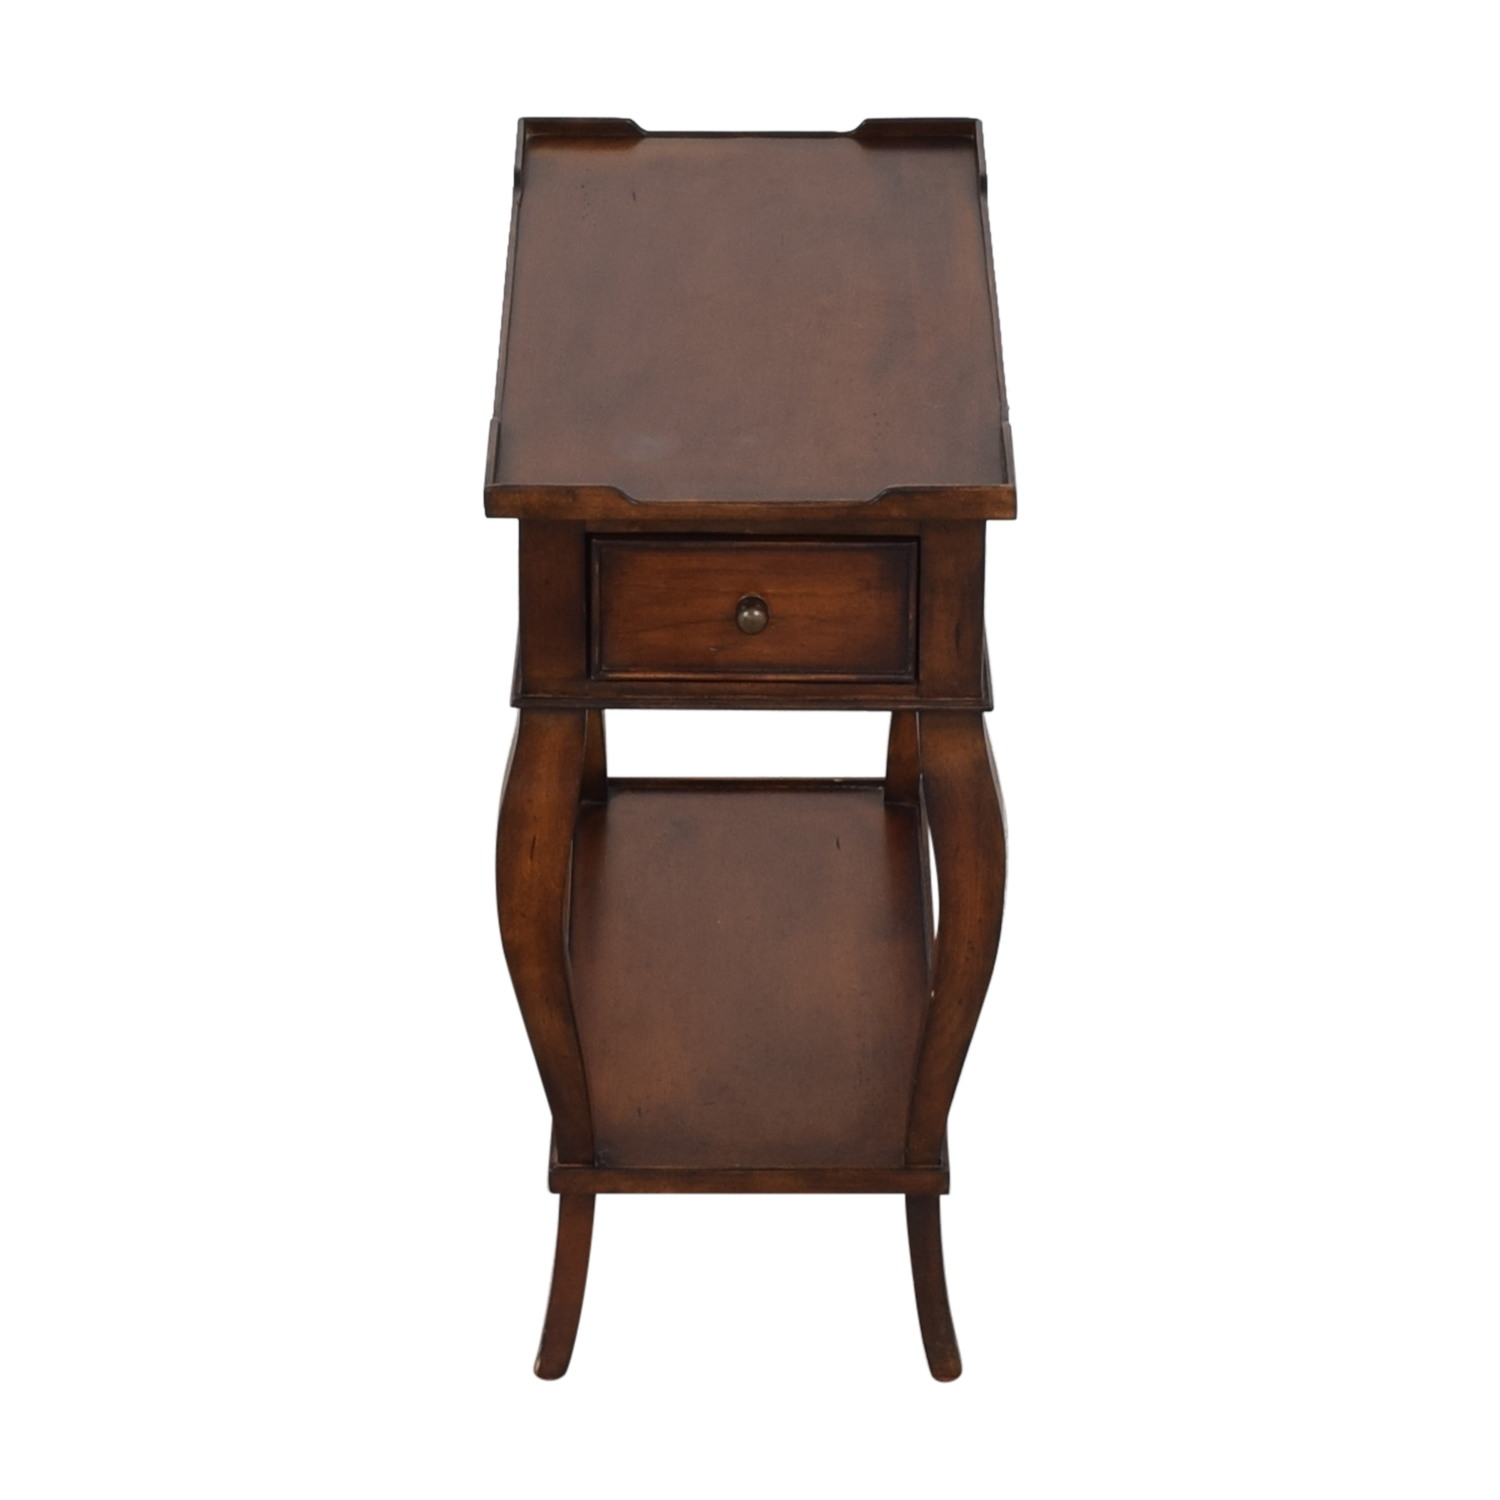 Ethan Allen Ethan Allen Solid Wood Side Accent Table nyc